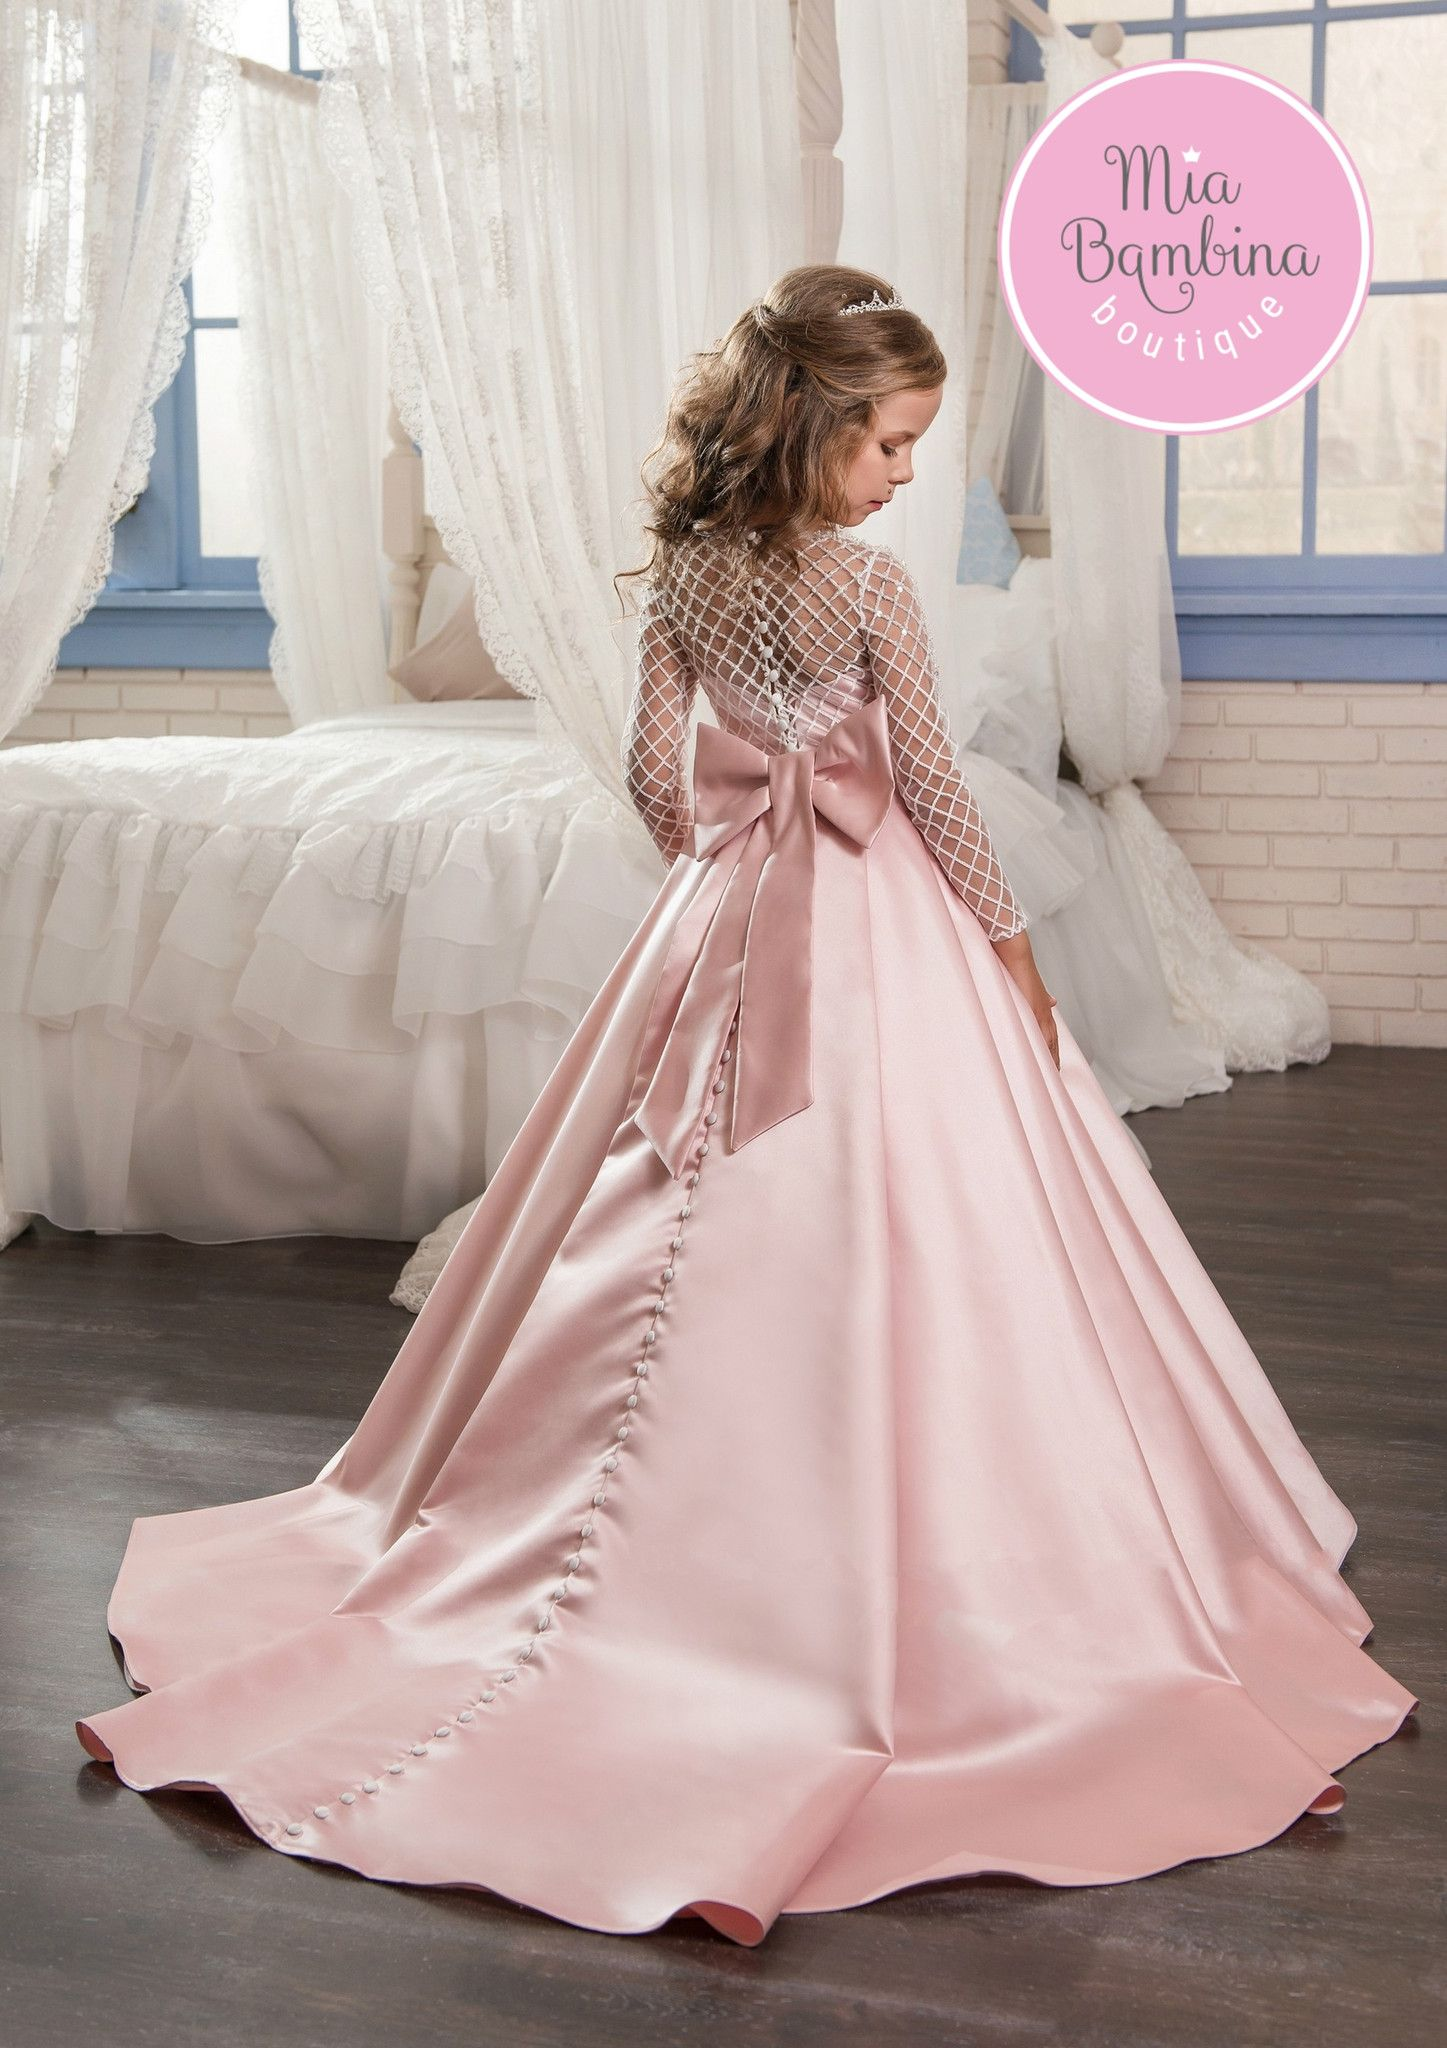 58e6c7227d0 This chic Toronto flower girl dress is a long satin ball gown for  vintage-inspired weddings. It features a long-sleeved top embroidered with  textured ...